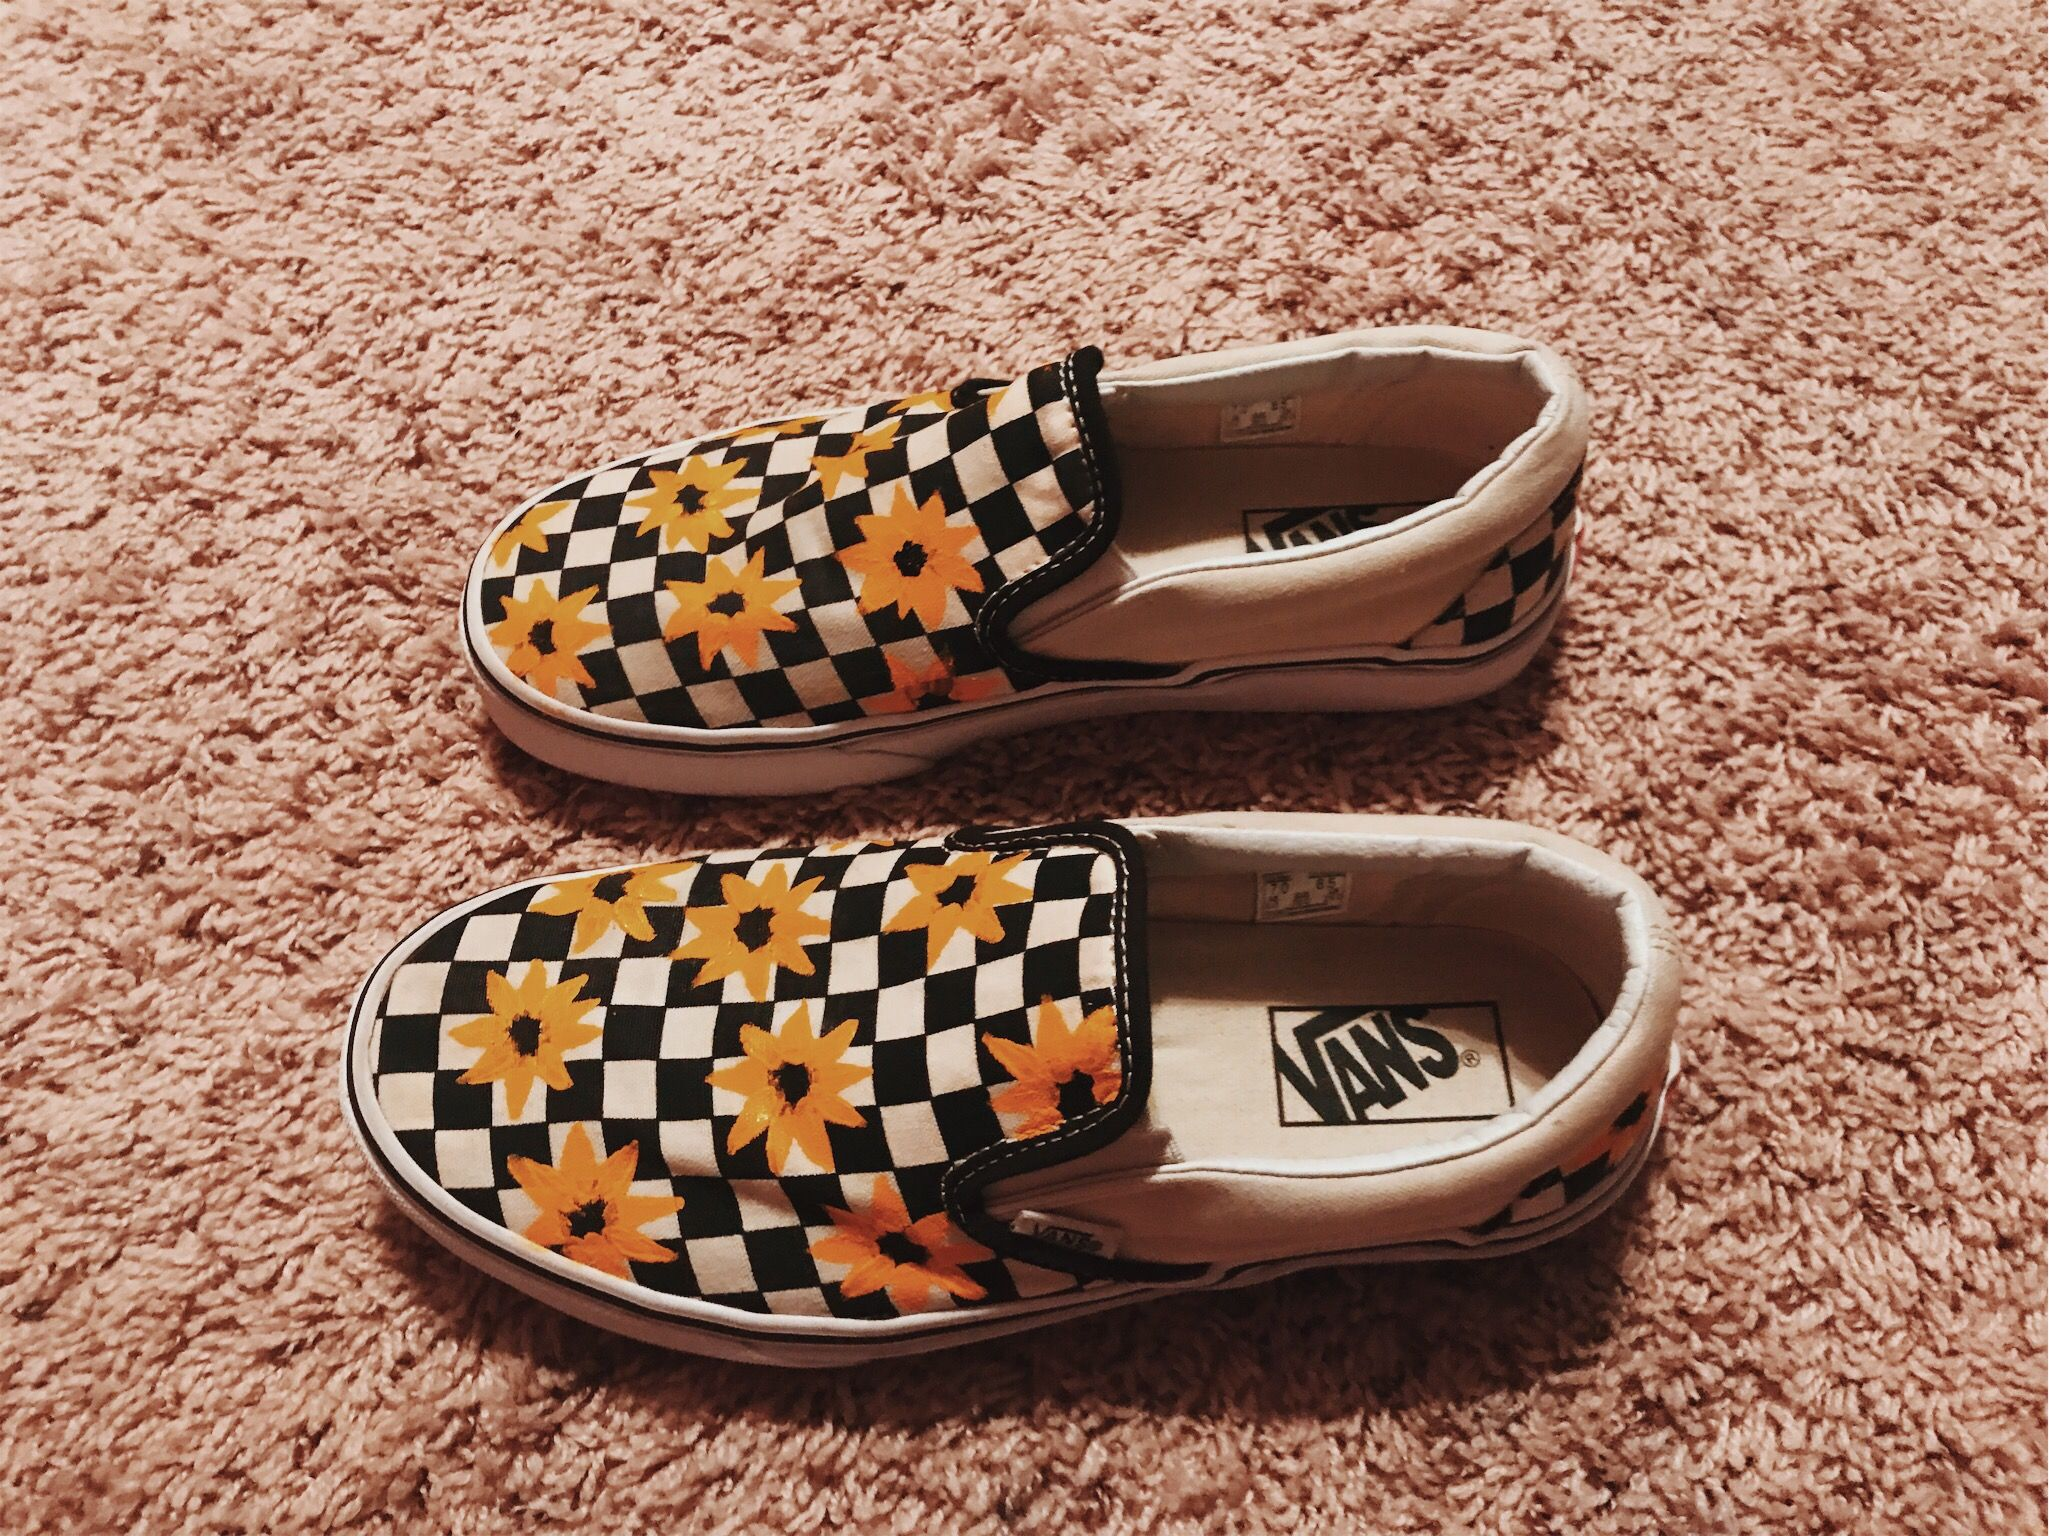 vans sunflower